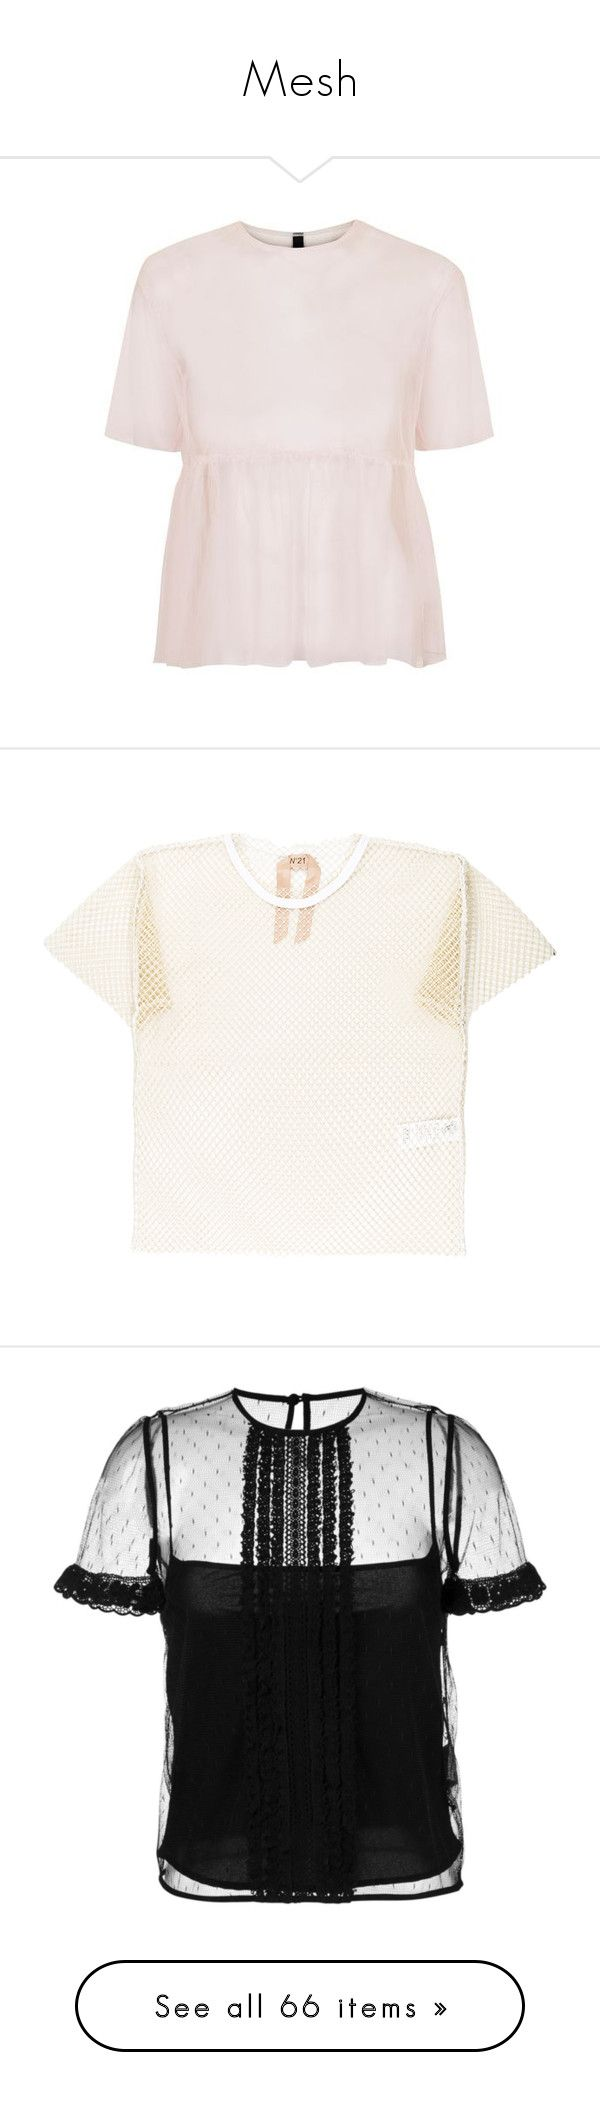 """""""Mesh"""" by girlwithherheadintheclouds ❤ liked on Polyvore featuring tops, t-shirts, white mesh top, mesh tee, mesh top, mesh t shirt, white t shirt, blouses, black and polka dot top"""